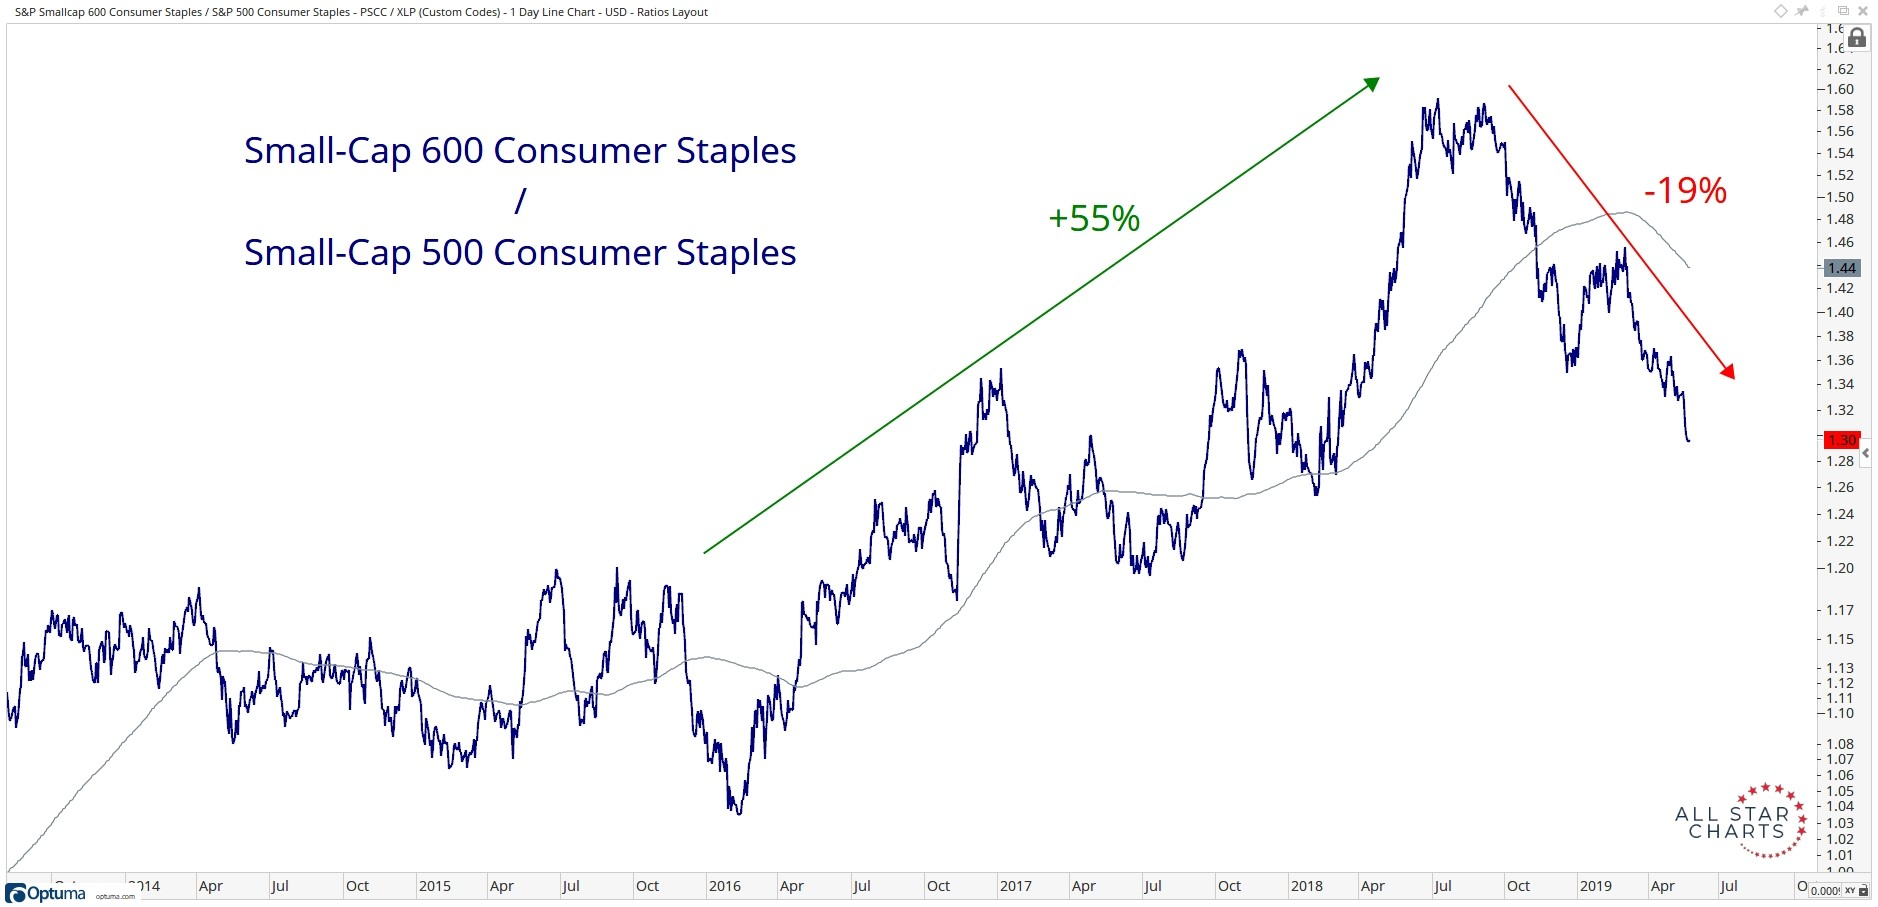 Long-term comparison of the performance of the S&P Small Cap 600 Consumer Staples relative to the S&P 500 Large Cap Consumer Staples.